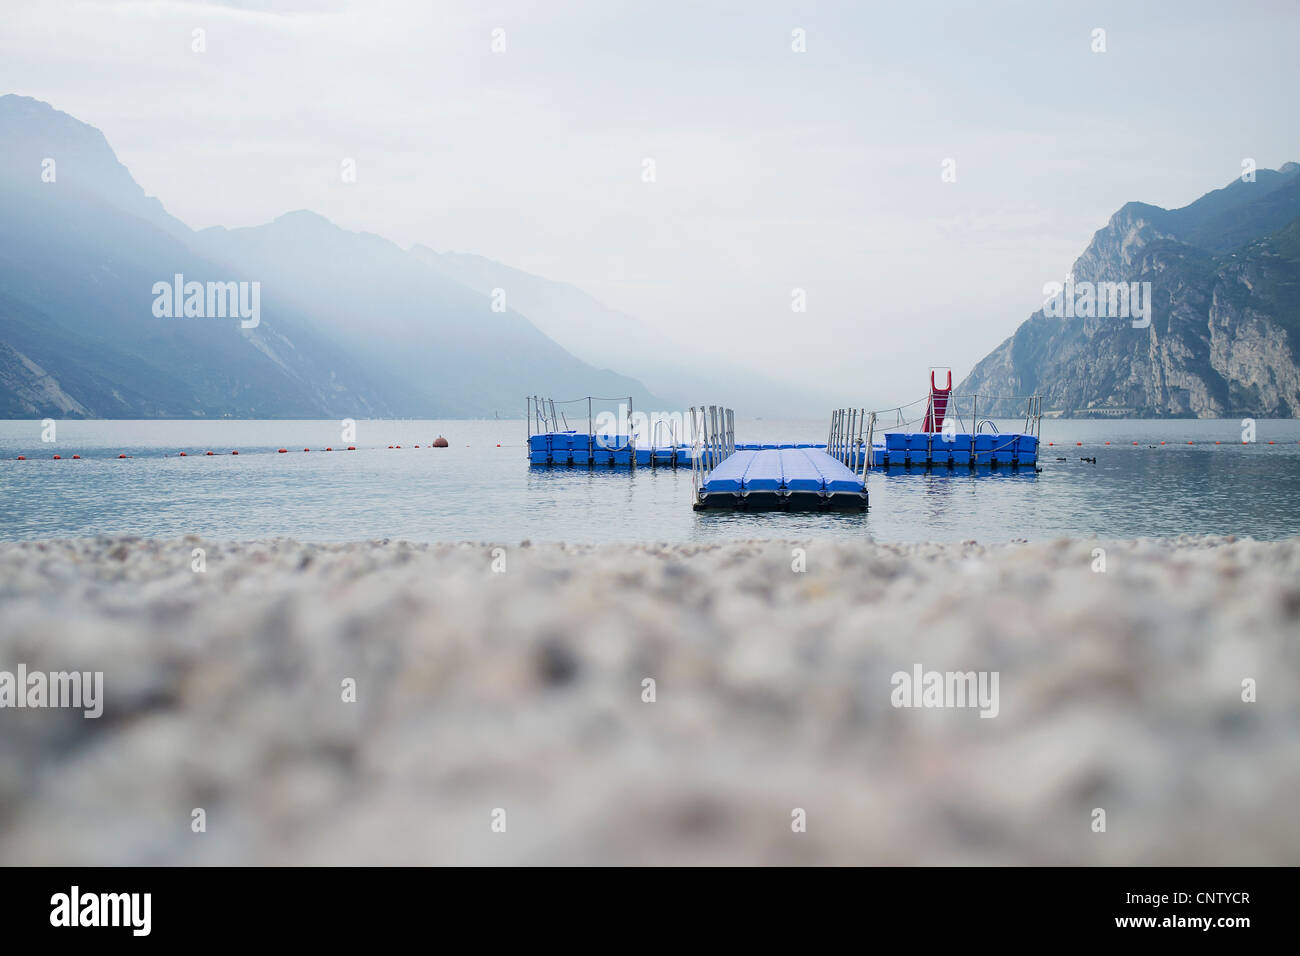 Floating pier off rocky beach - Stock Image